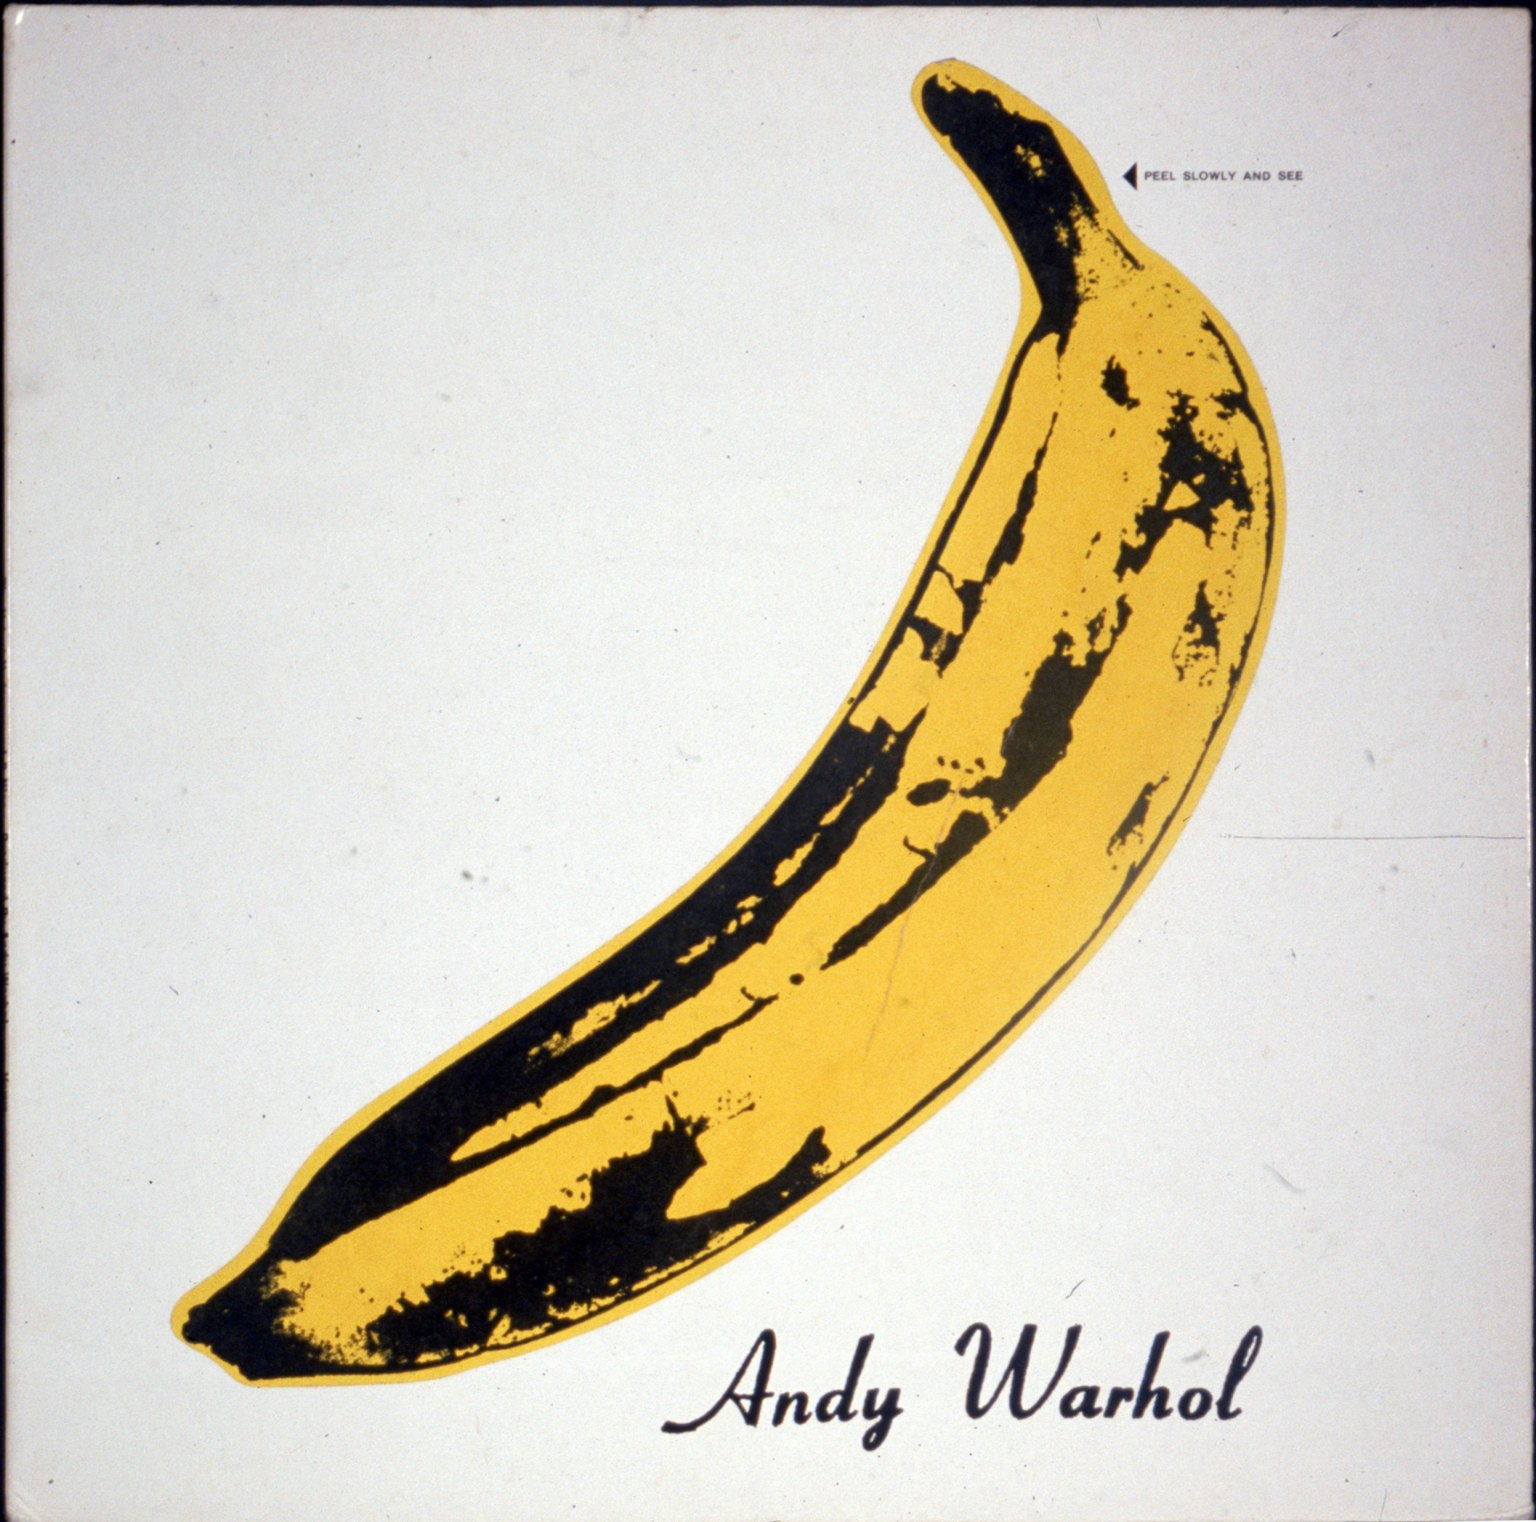 o-ANDY-WARHOL-BANANA-facebook.jpg